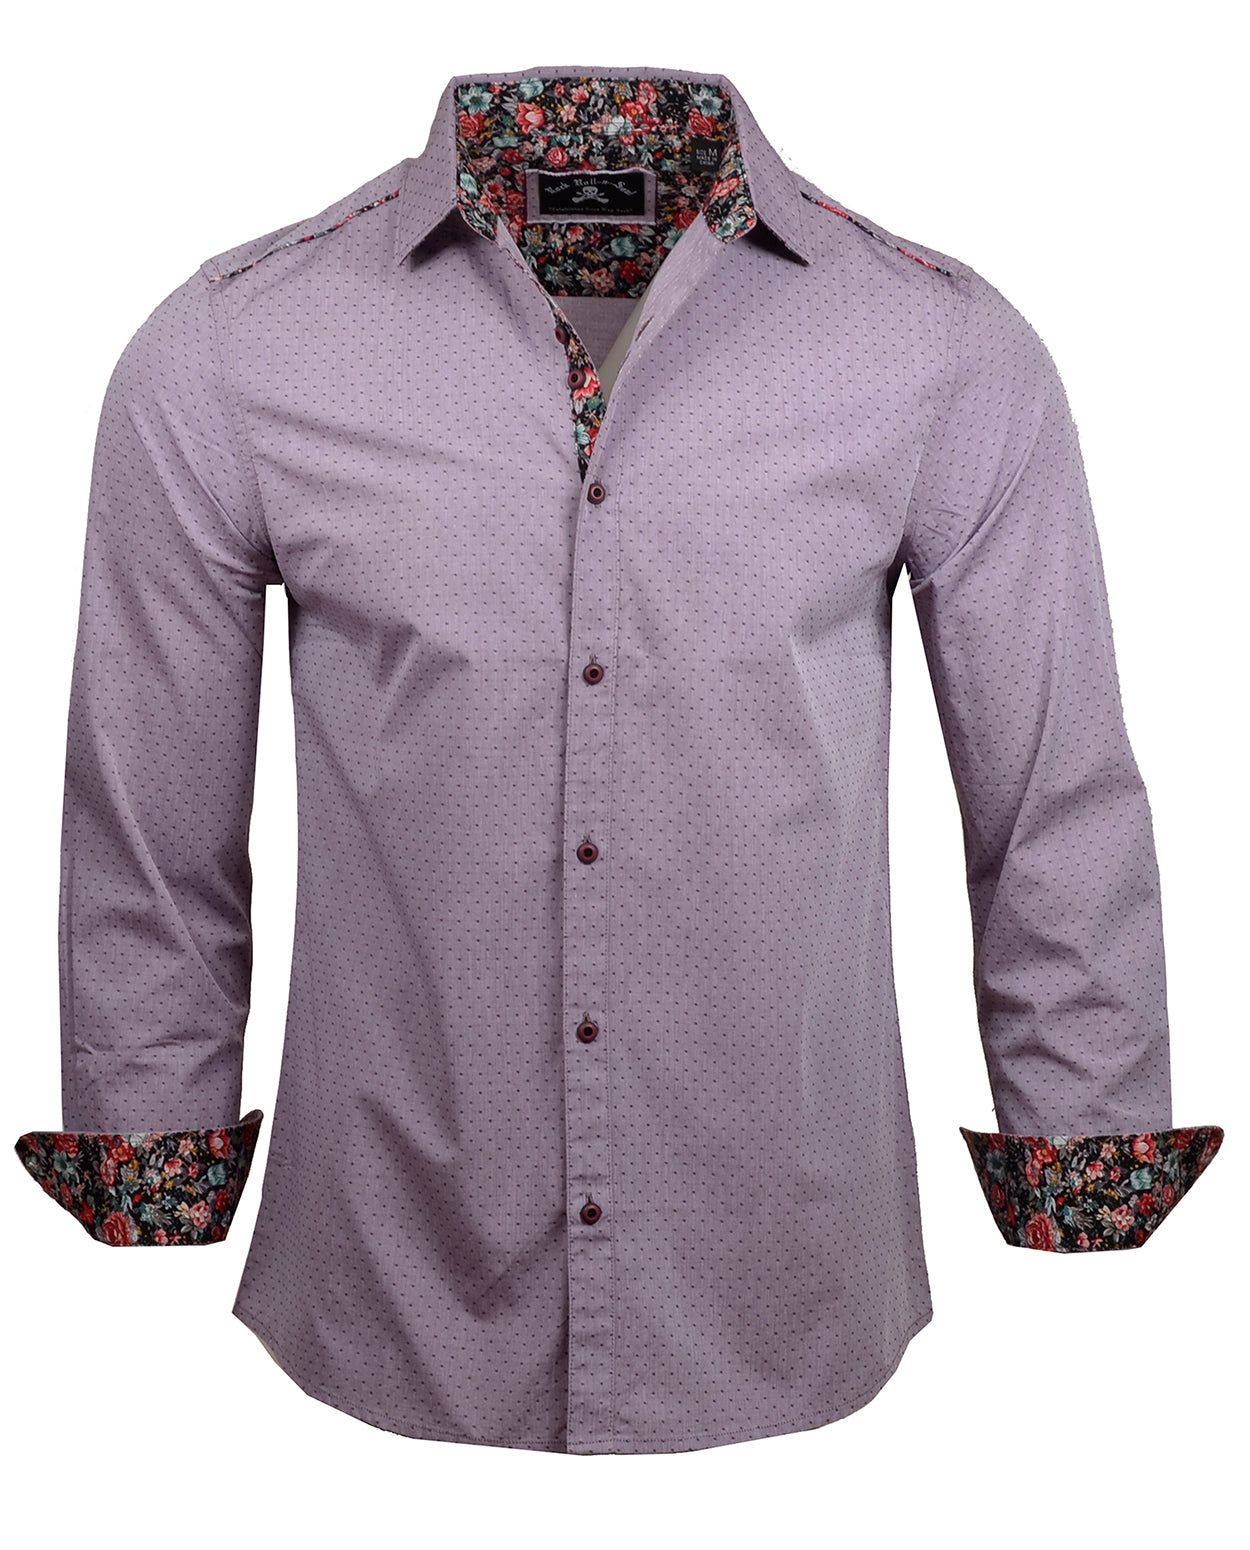 Men's Casual Fashion Button Up Shirt - Heavy California by Rock Roll n Soul